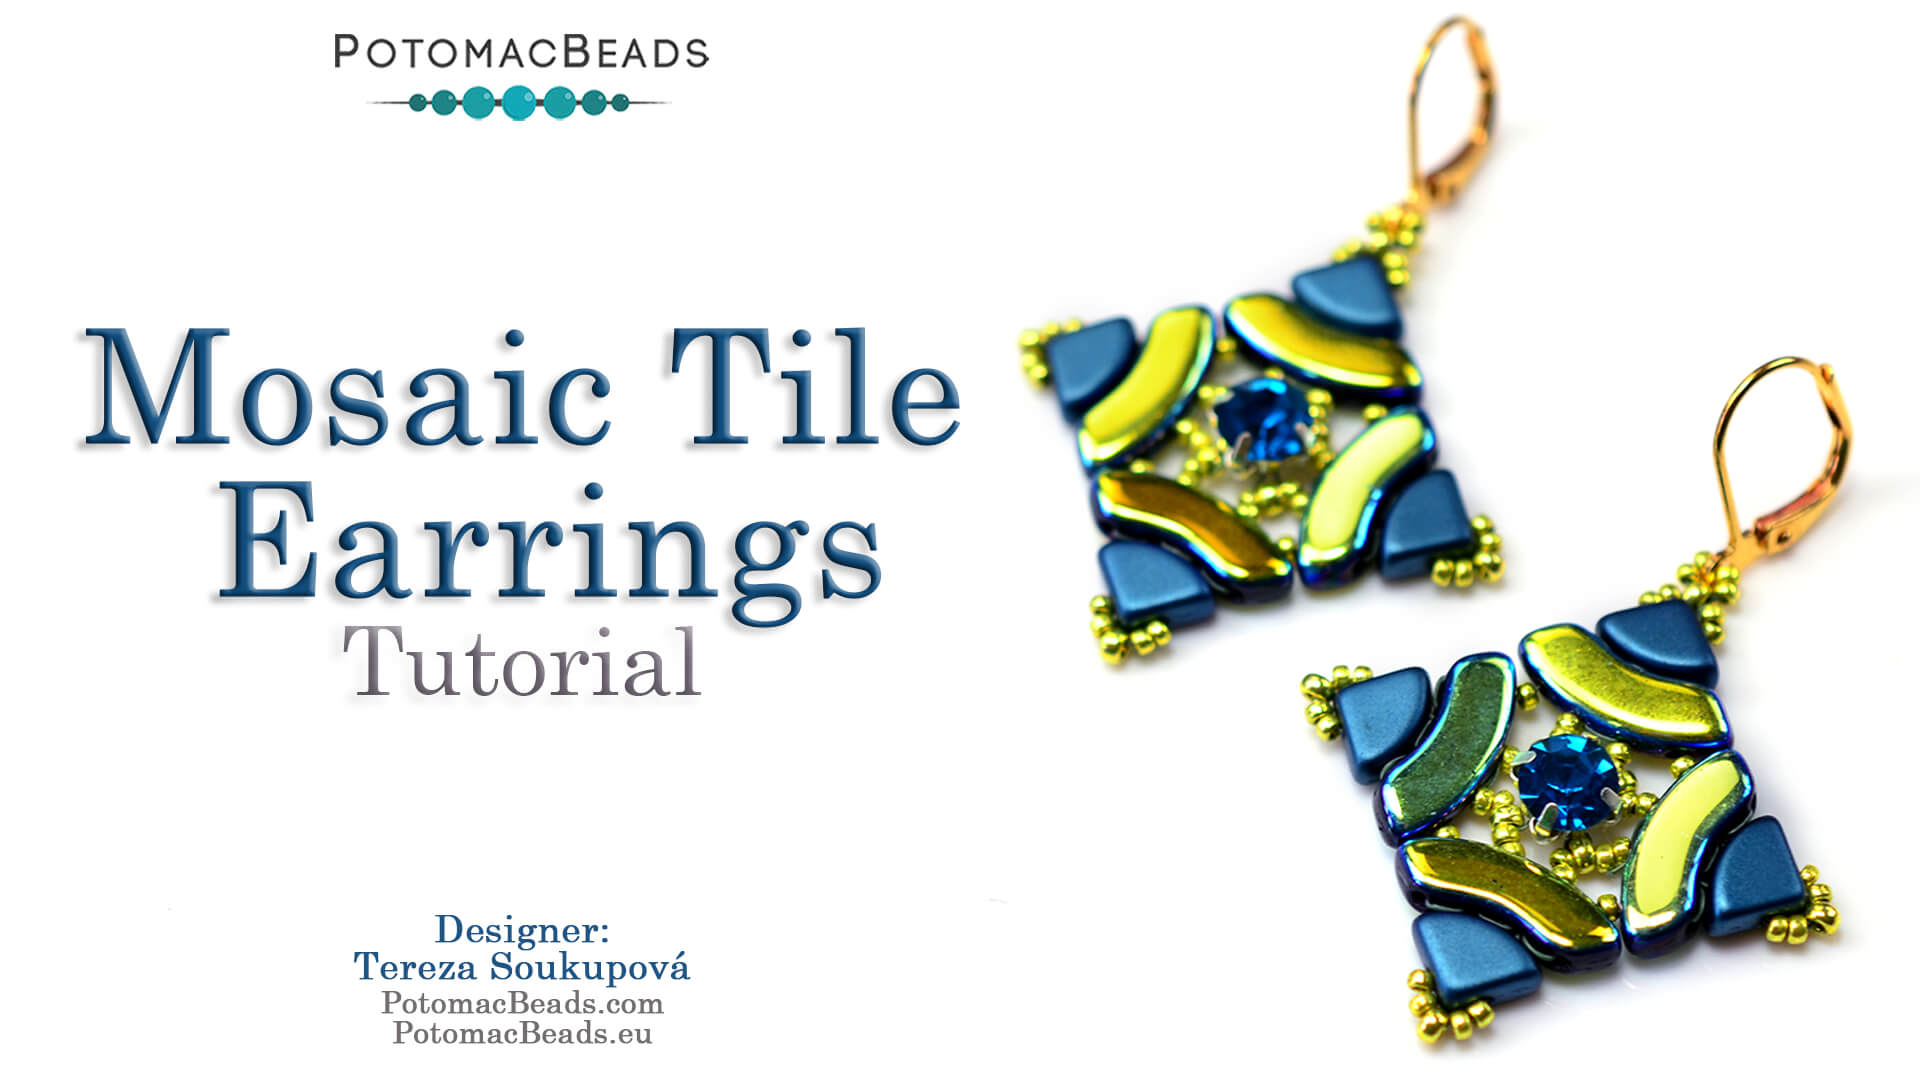 How to Bead / Videos Sorted by Beads / QuadBow & PieDuo Bead Videos / Mosaic Tile Earring Tutorial